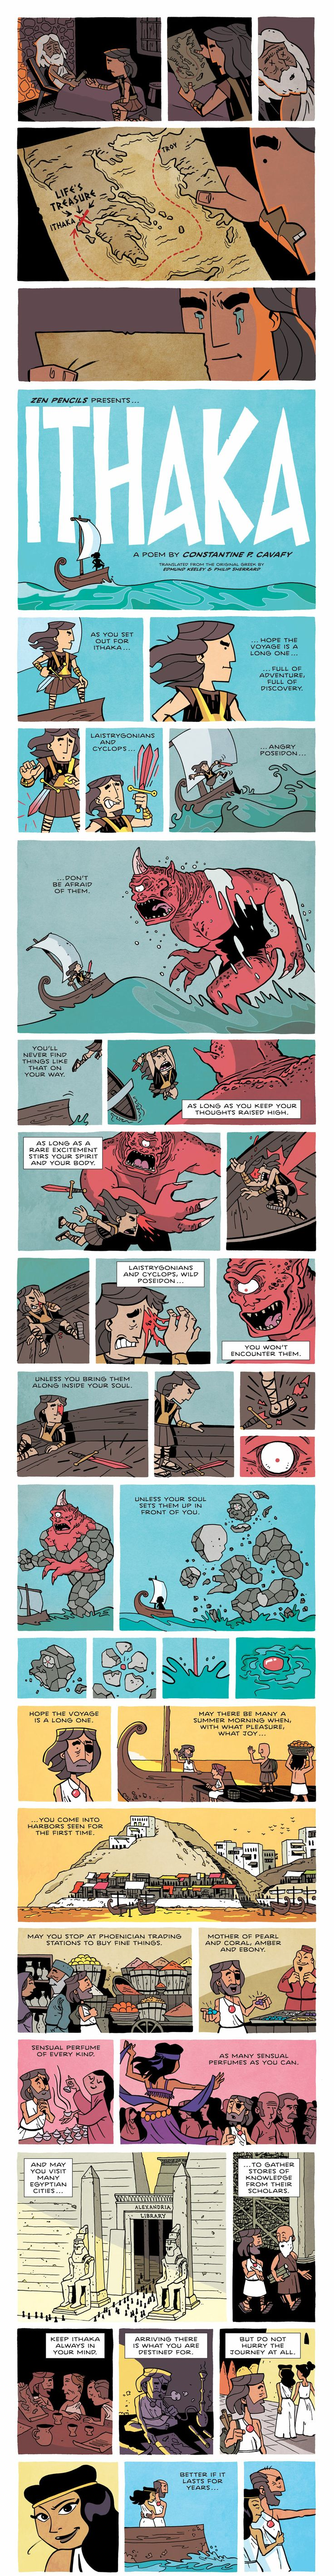 #Zenpencils - #webcomic by Gavin Aung Than - Ithaka (click through for the complete comic)